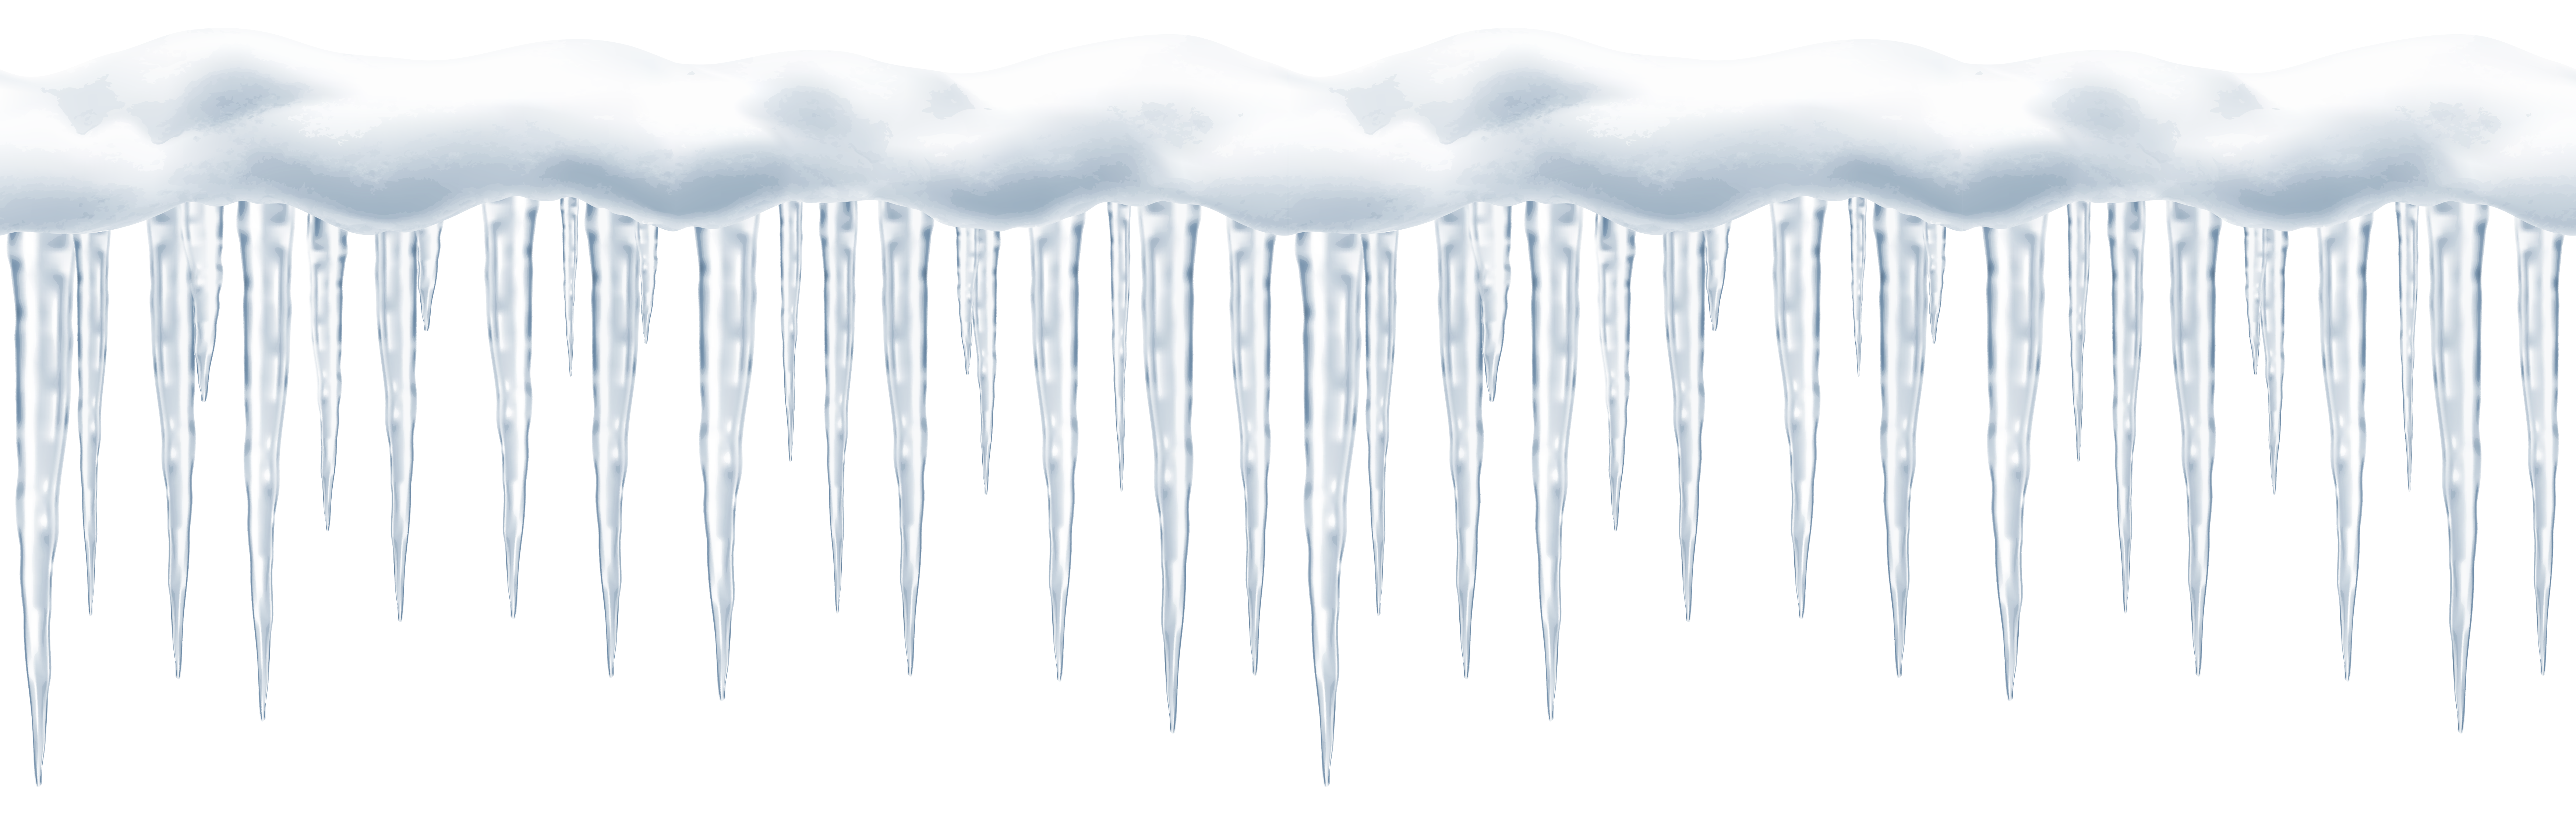 Photography clipart photo album. Long icicles transparent png